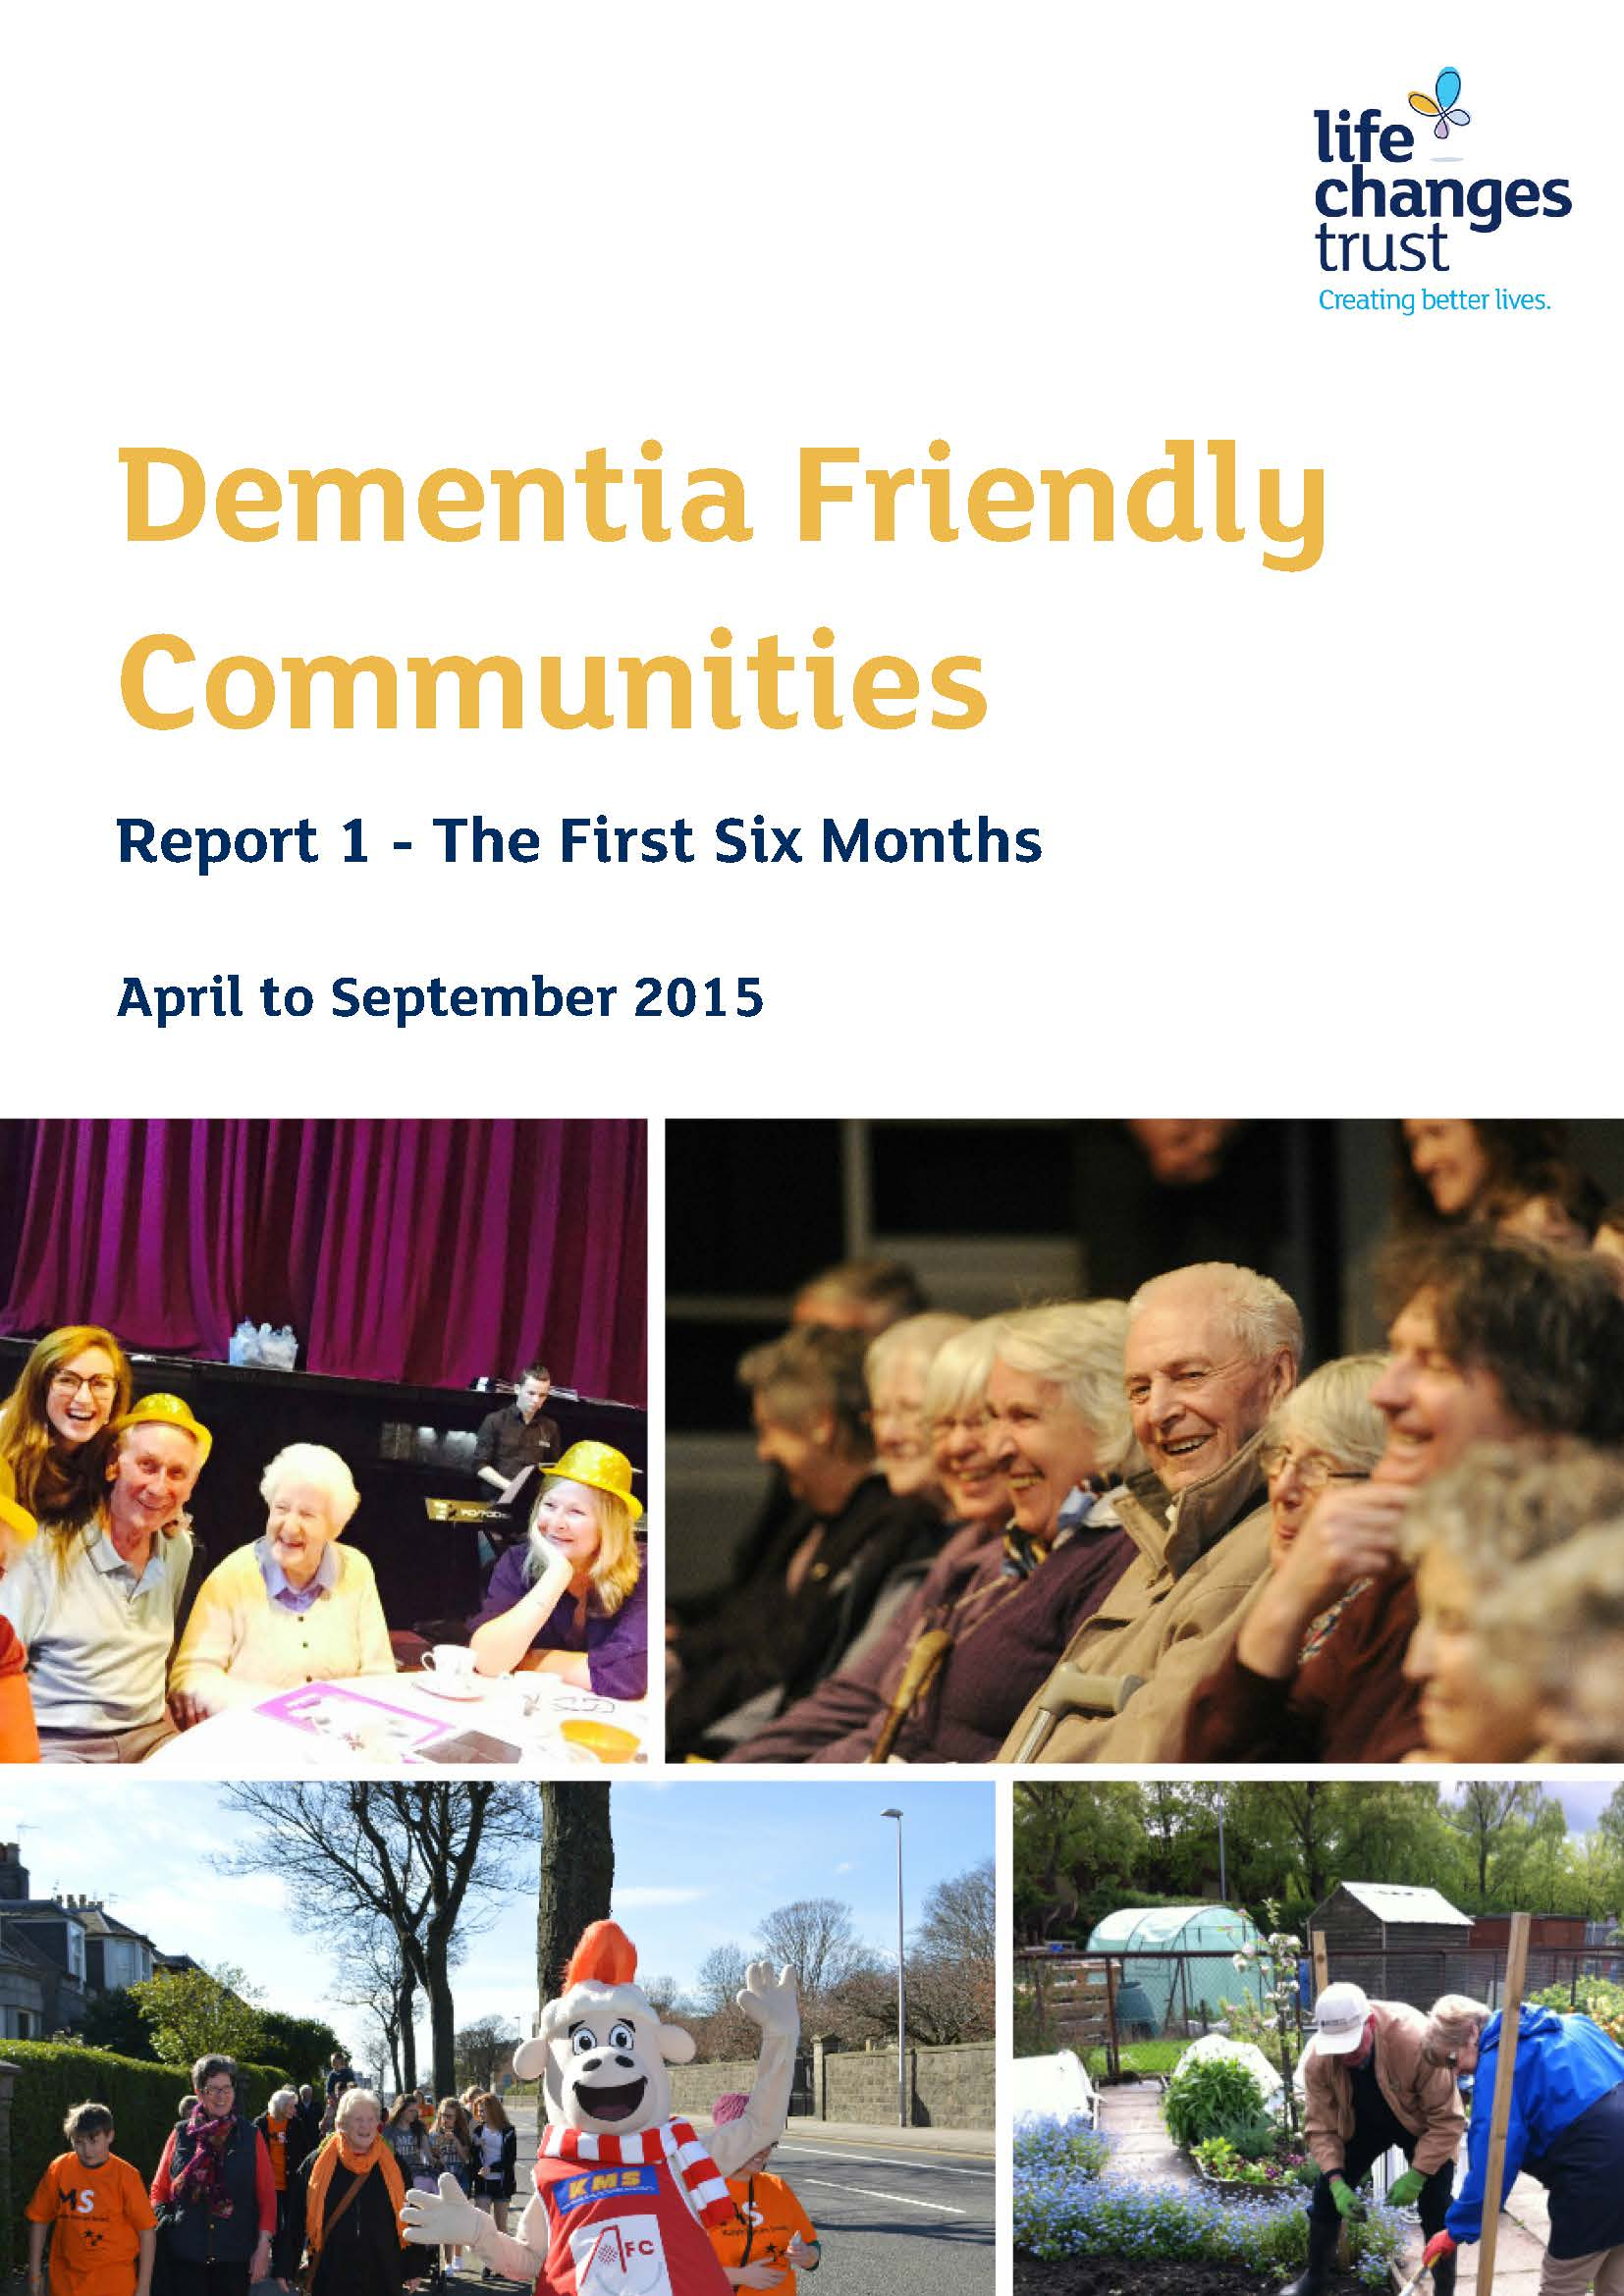 Dementia Friendly Communities Report 1 - The First Six Months